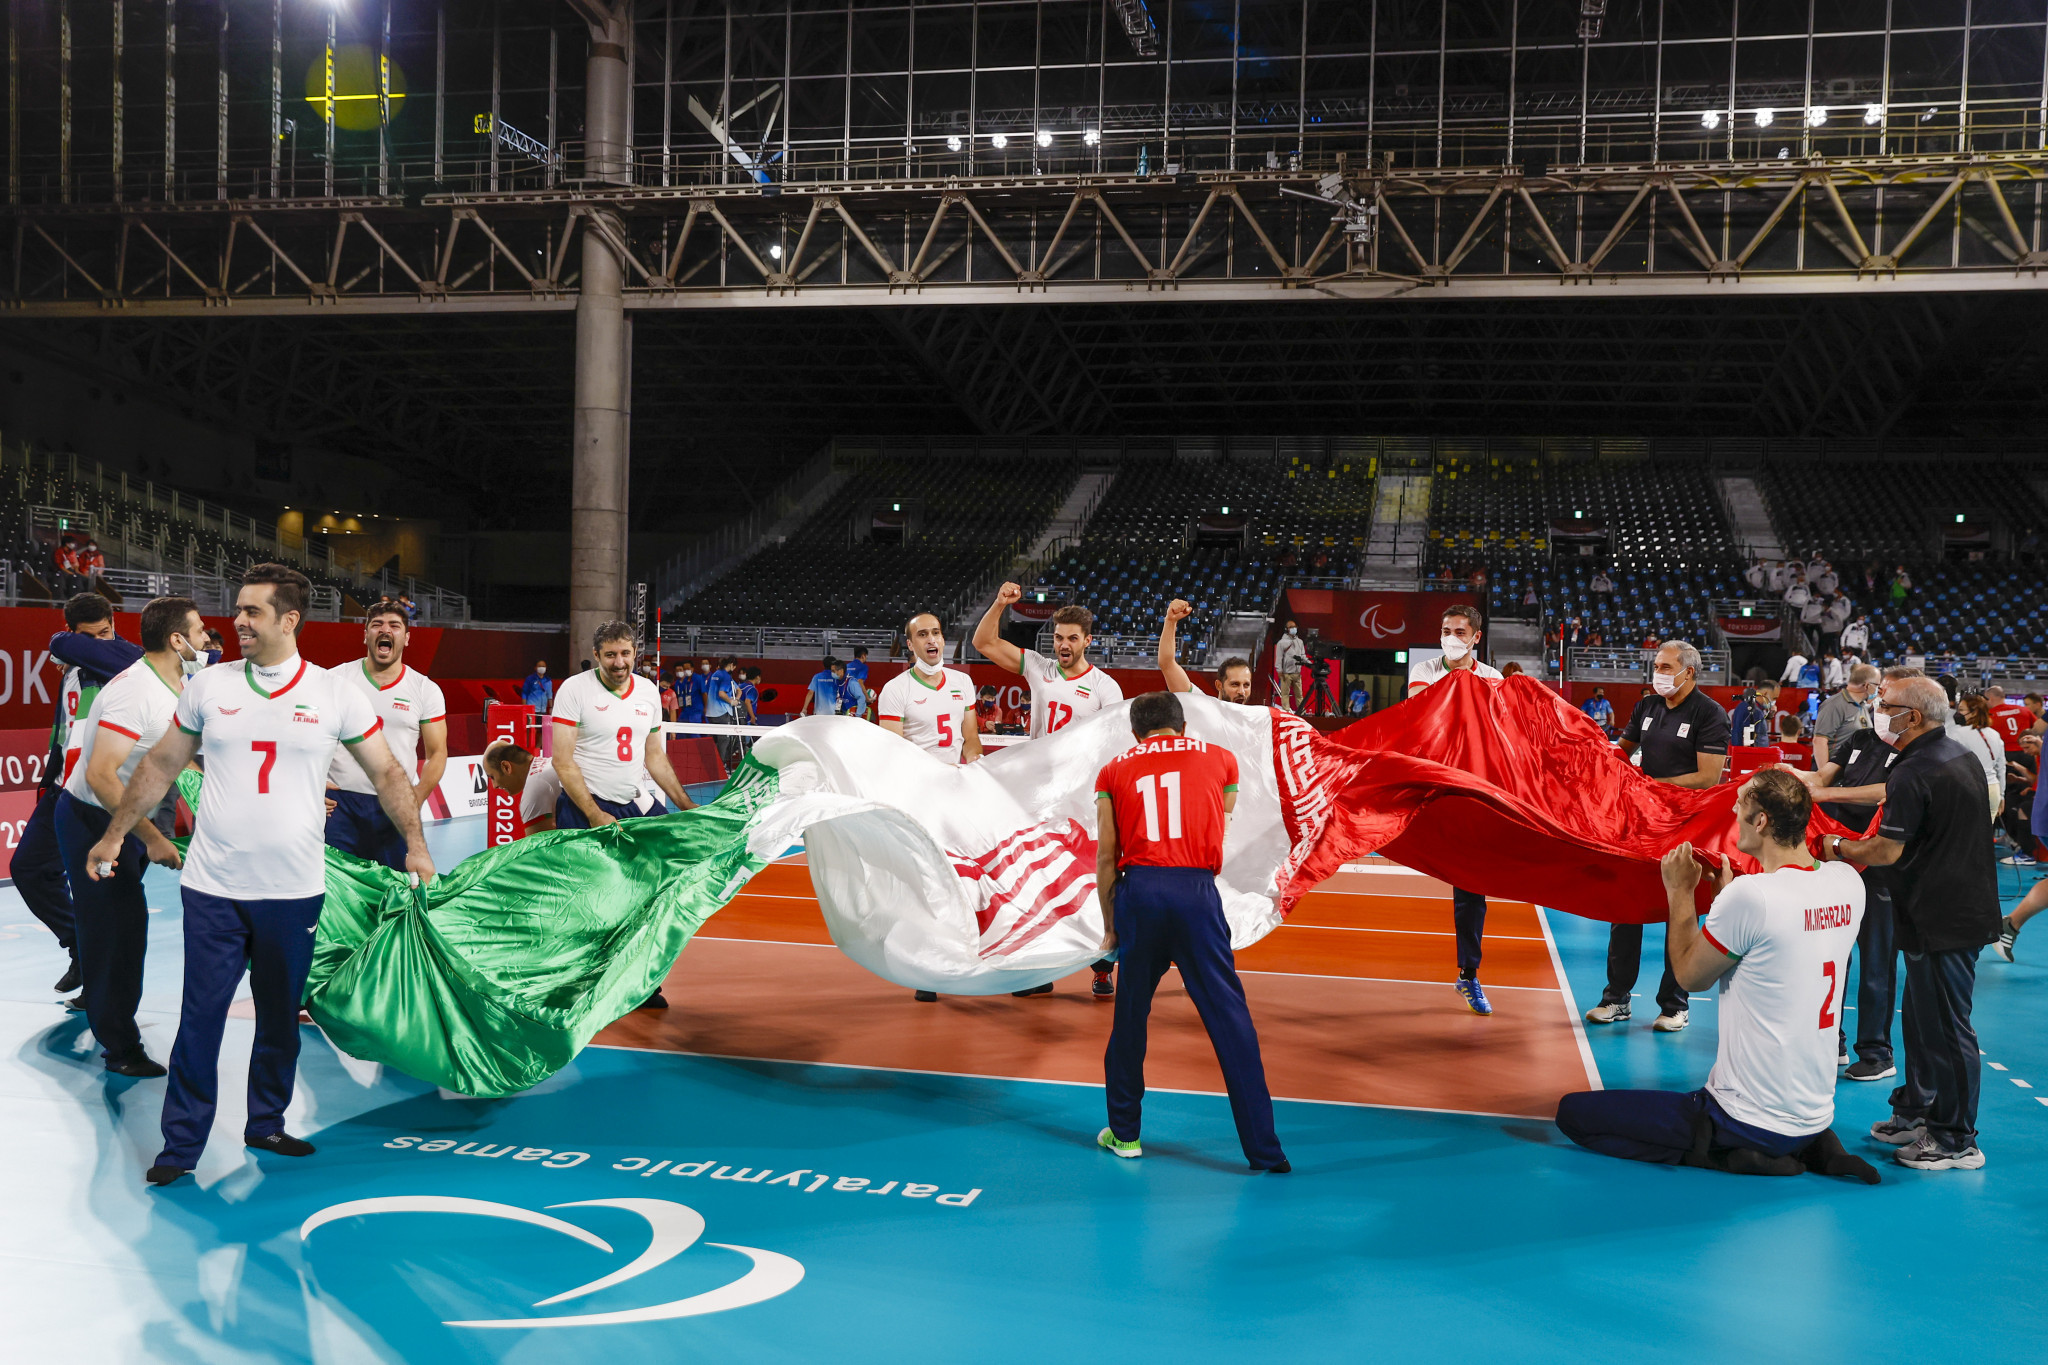 Iran won medals at six successive Paralympics under the guidance of Hadi Rezaei ©Getty Images